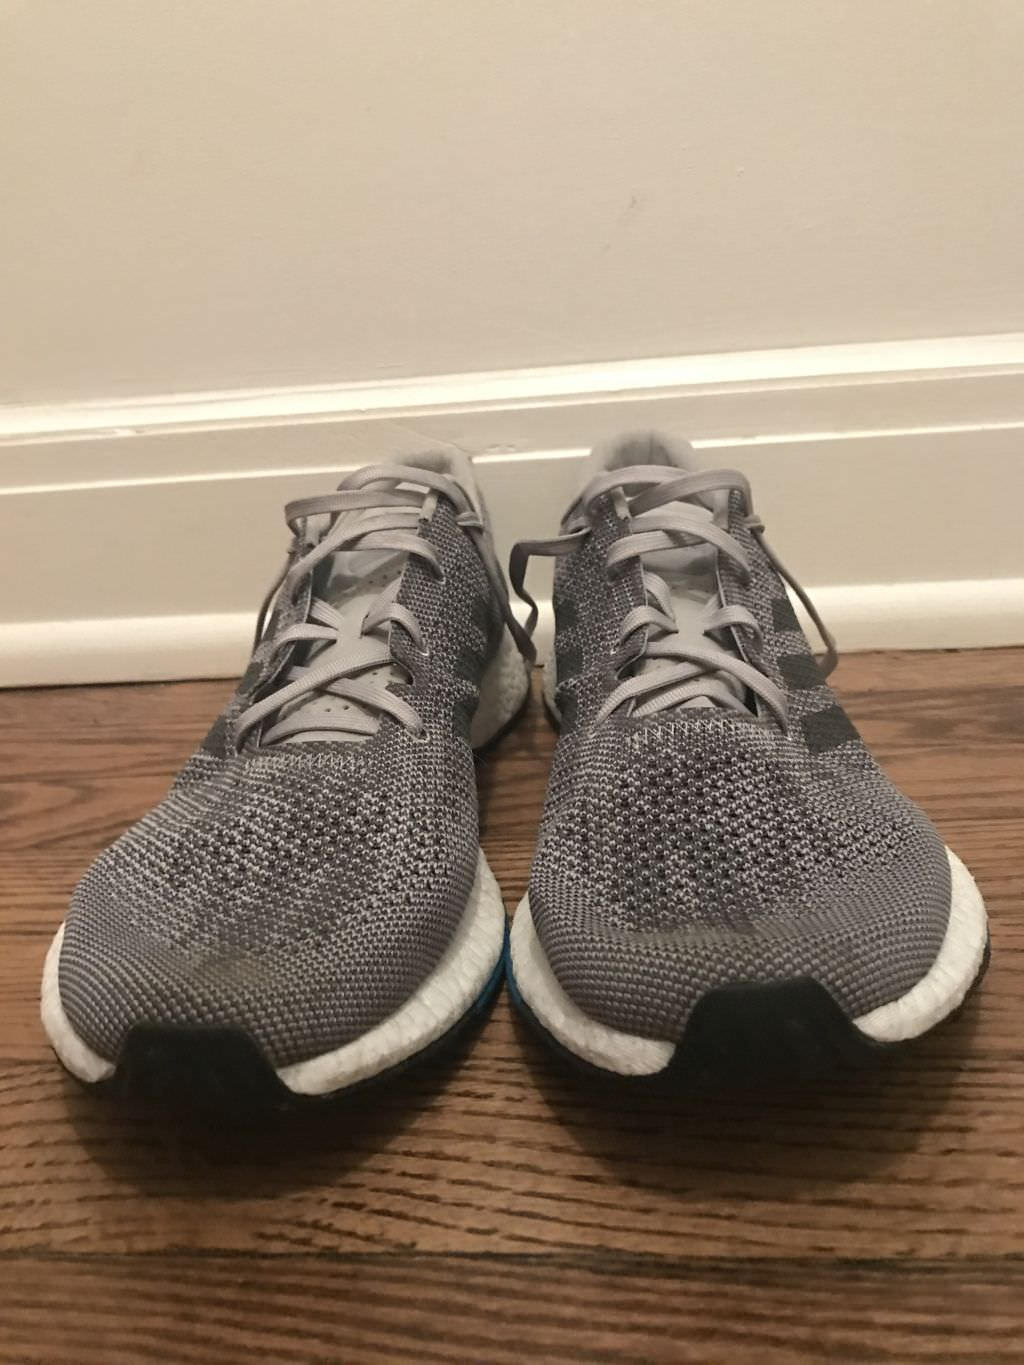 a business review of adidas running shoes Adidas - nmd r1 bape 'bape' - ba7325 - running shoes from amazing  sneakers - nmd r1 bape 'bape' - ba7325 - running shoes  write a review.